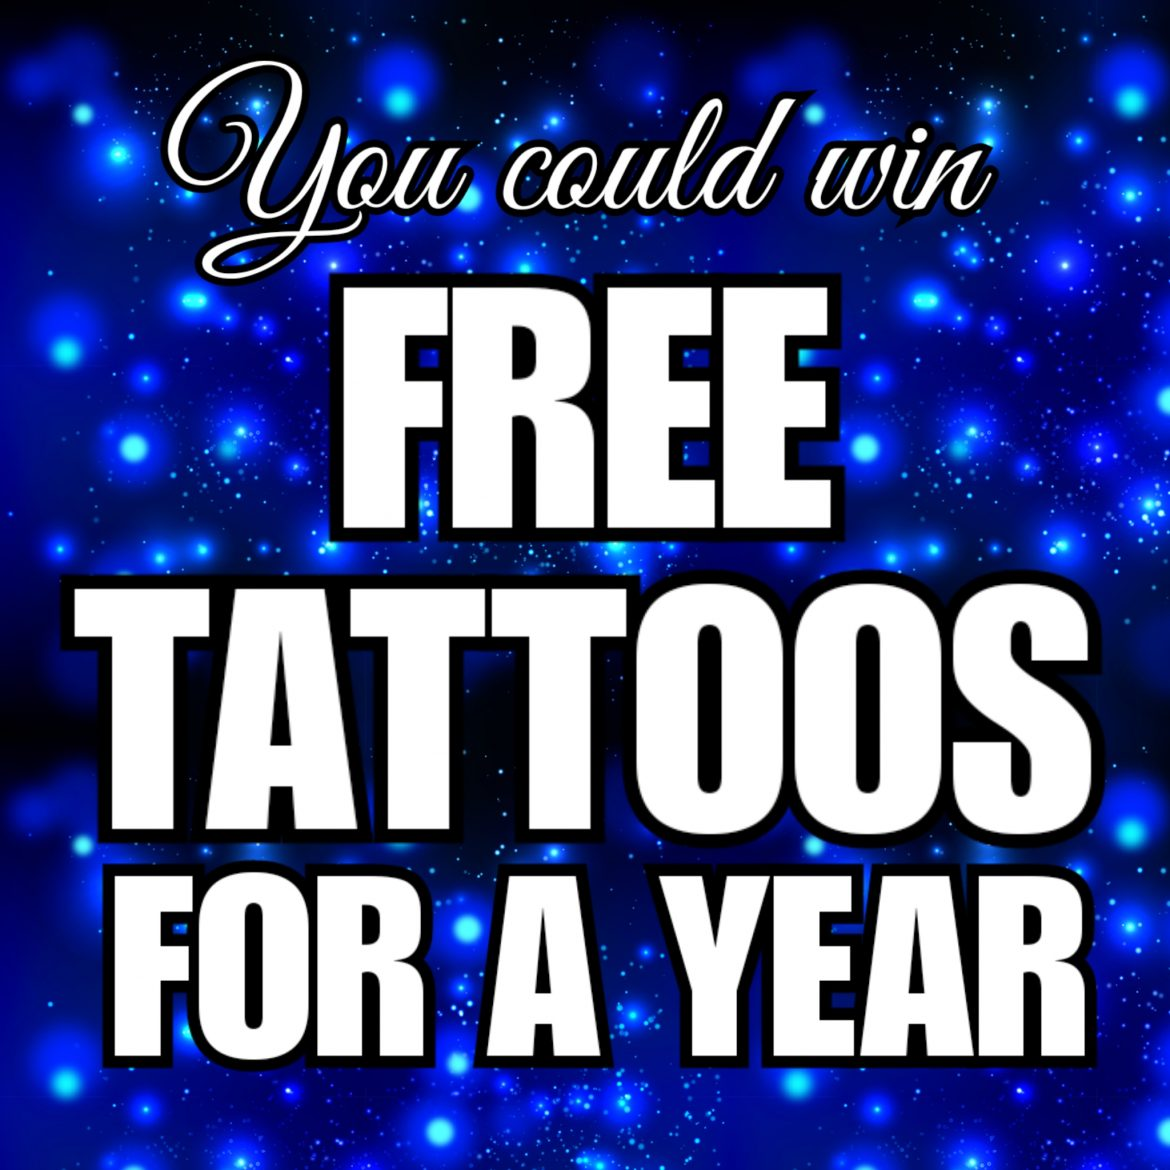 You could win free tattoos for a year in our biggest Christmas Giveaway ever!